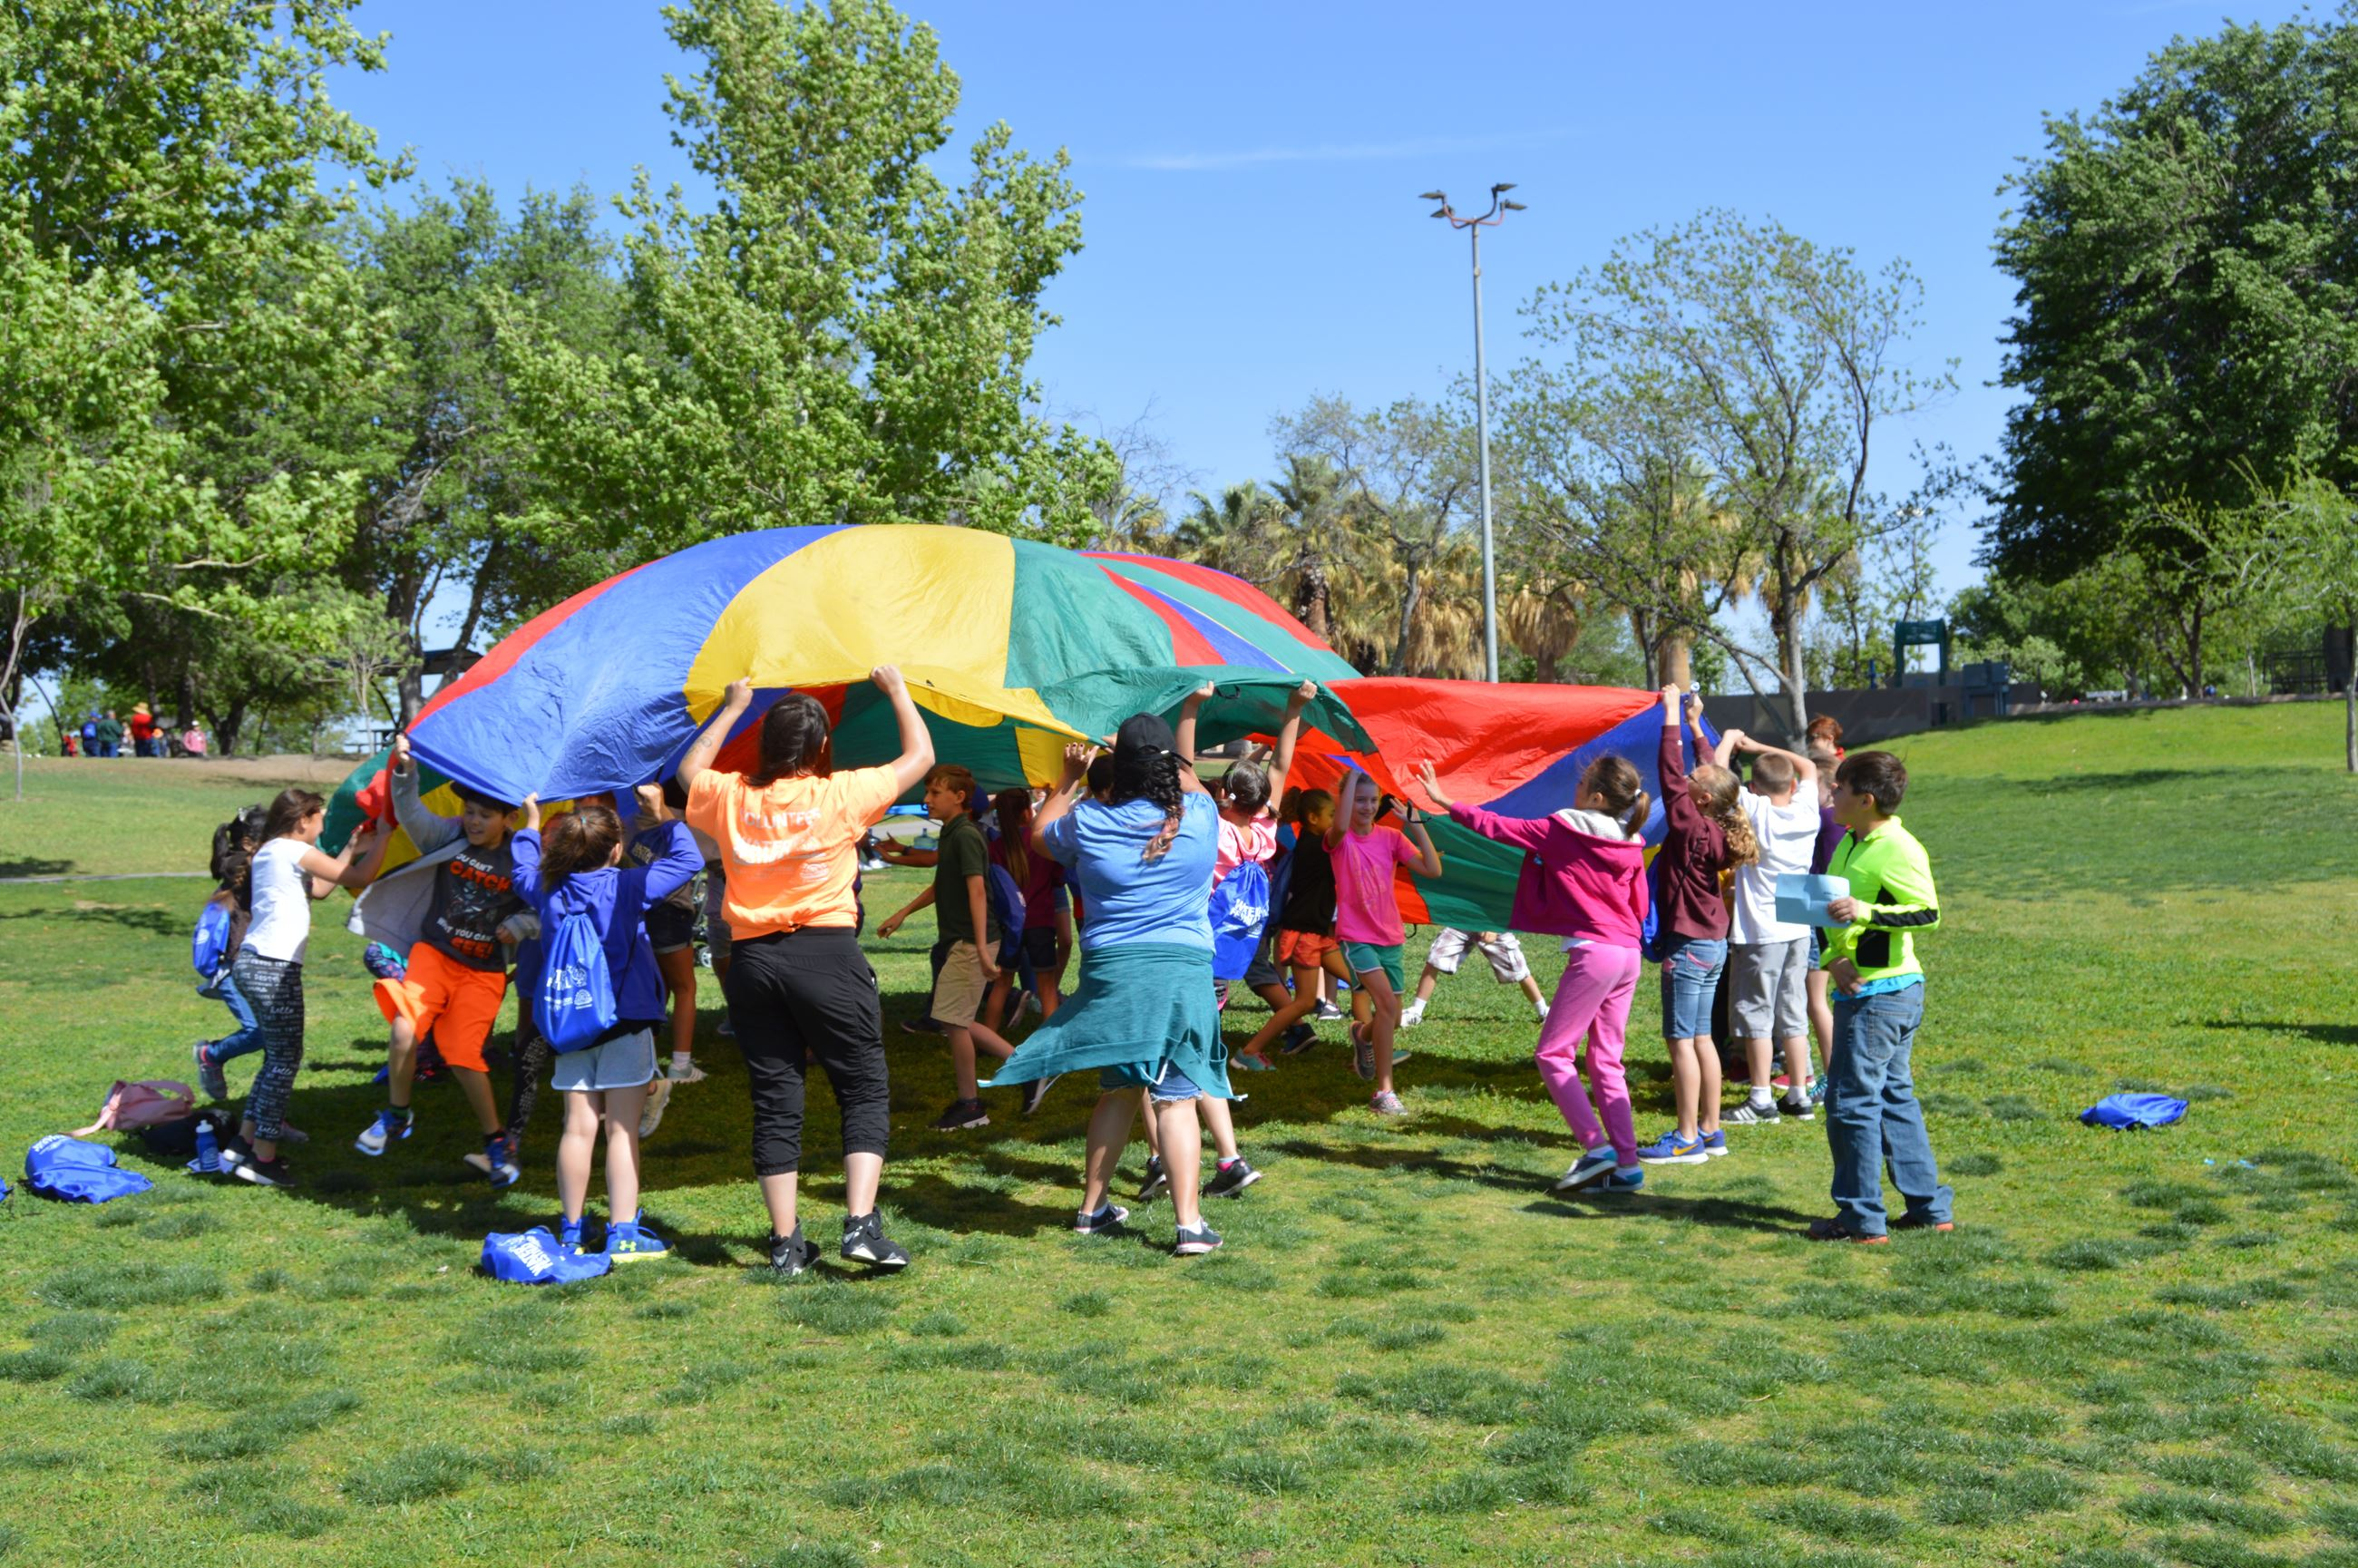 Kids playing wtih a giant parachute